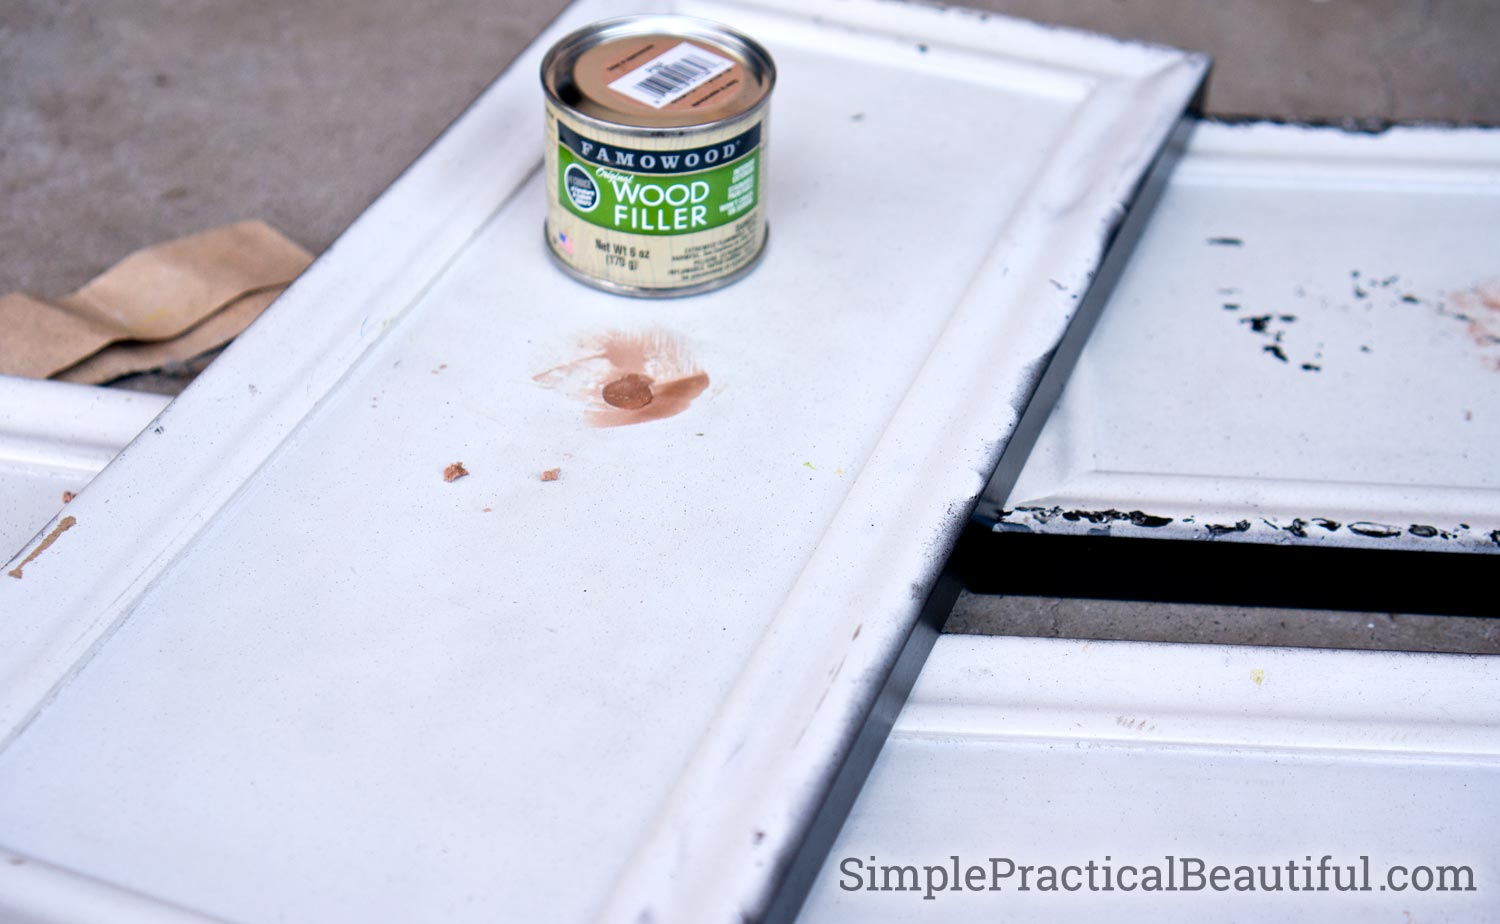 Use wood filler to repair holes when replacing furniture hardware